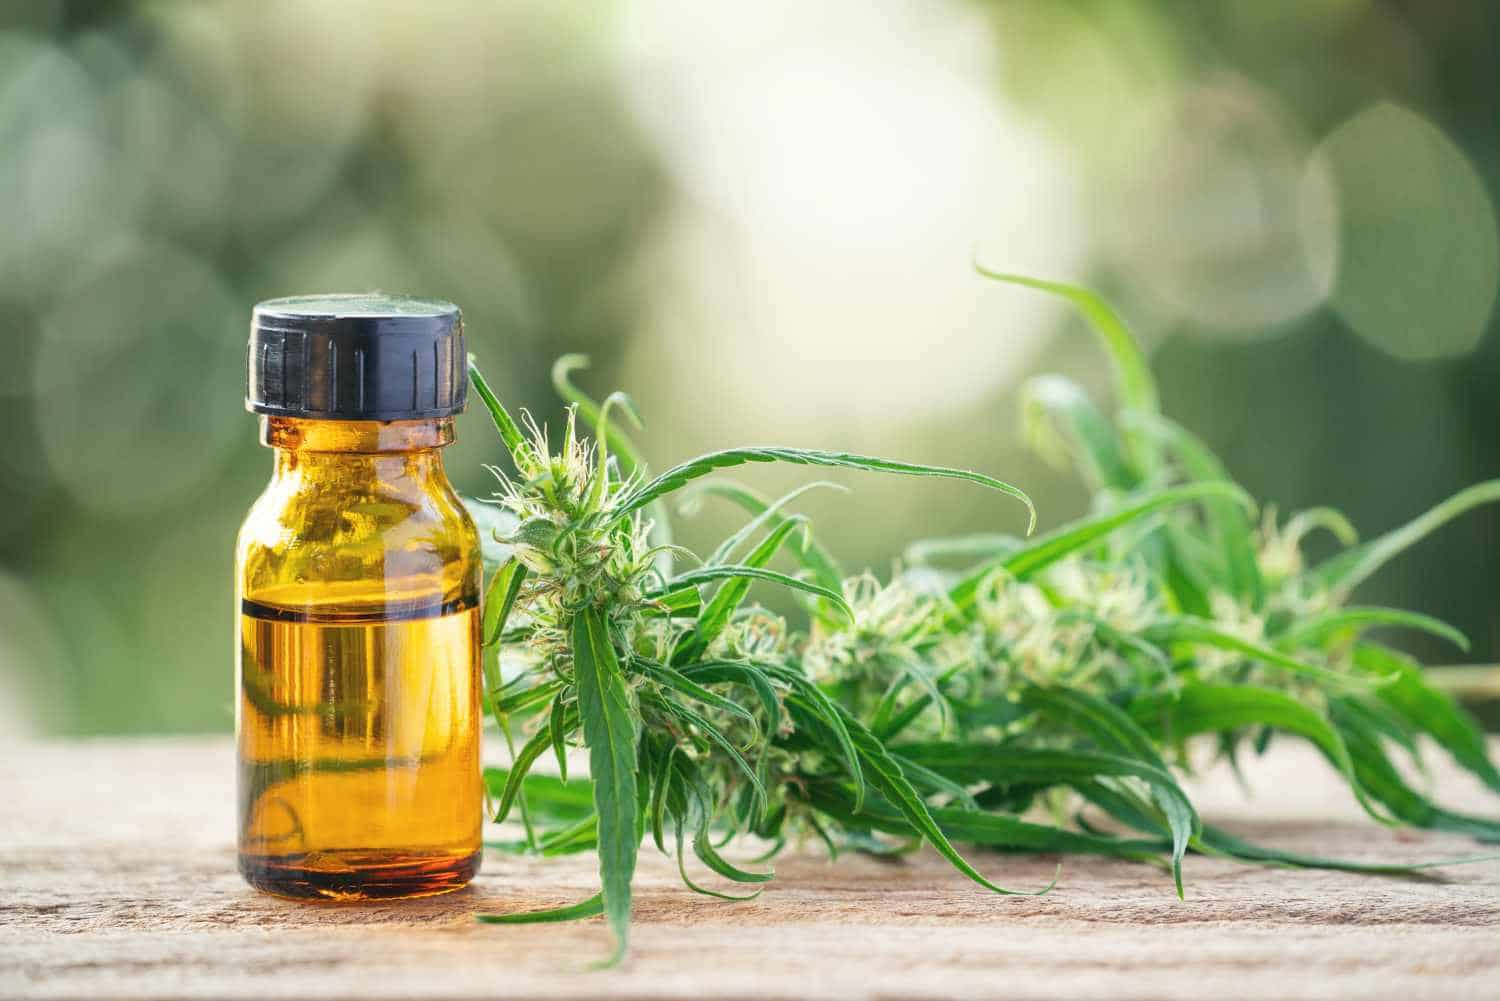 What Does CBD Oil do, and what are it's Side Effects?